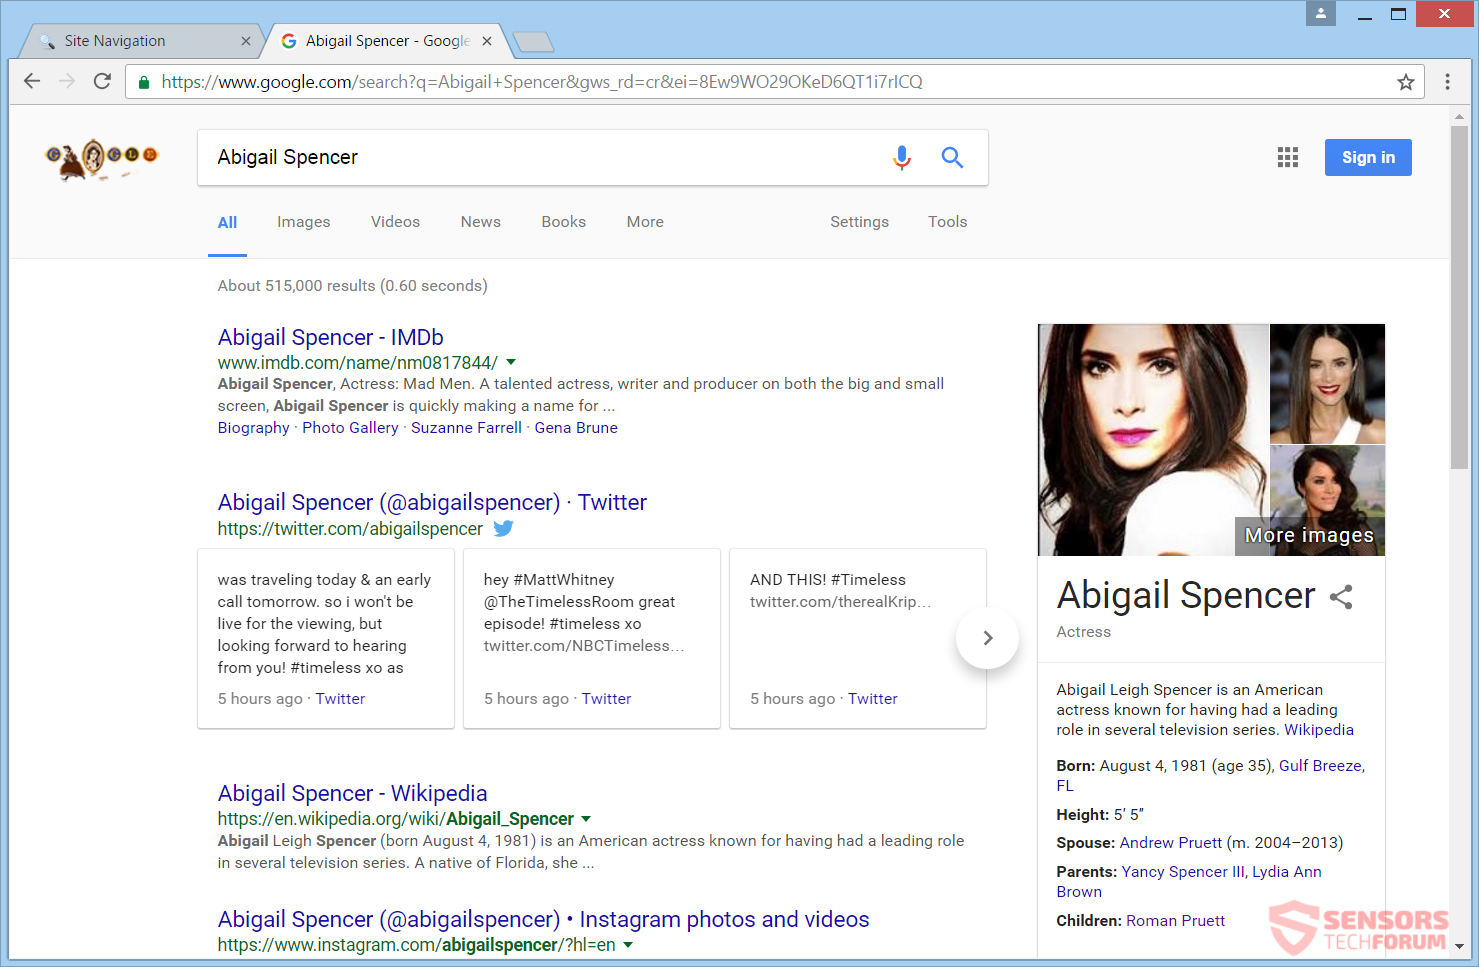 STF-tgmgo-com-search-navegador-secuestrador-redirect-Abigail Spencer-search-results